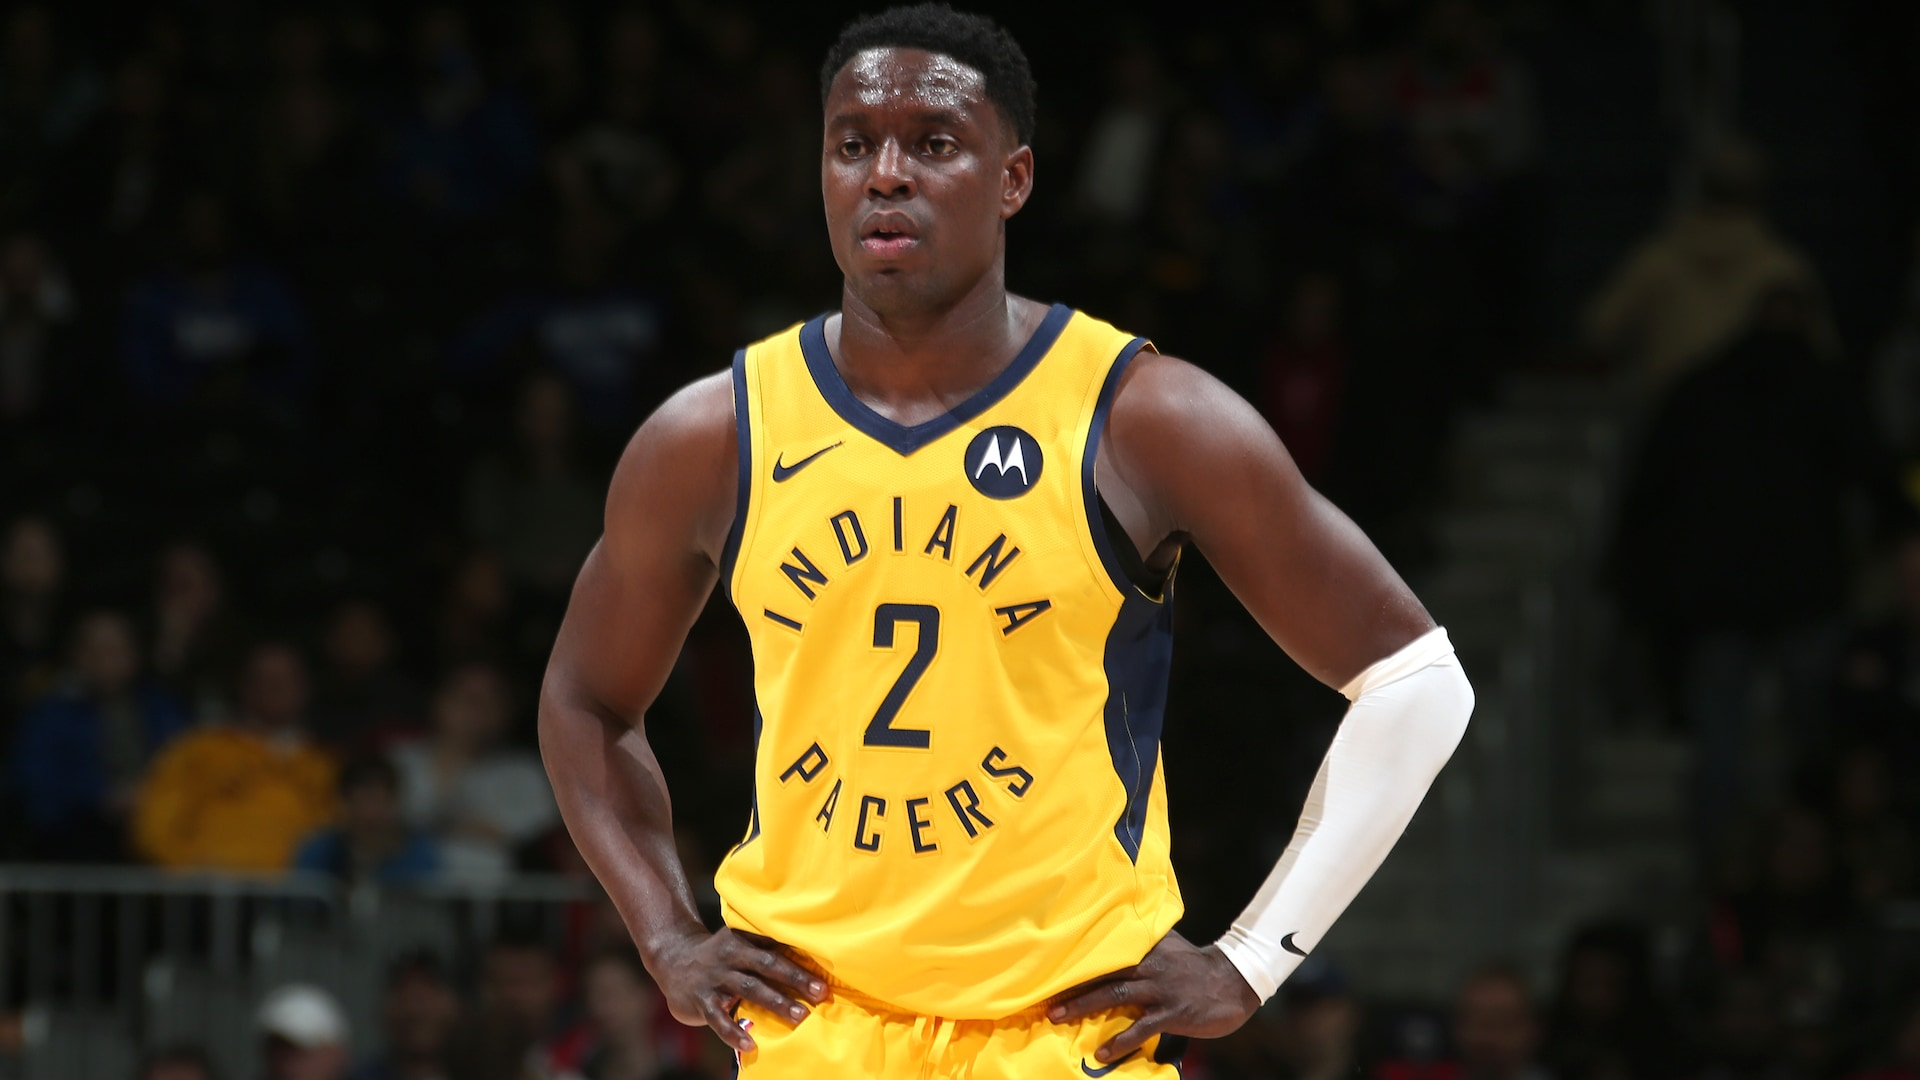 Report: Darren Collison mulling return to NBA